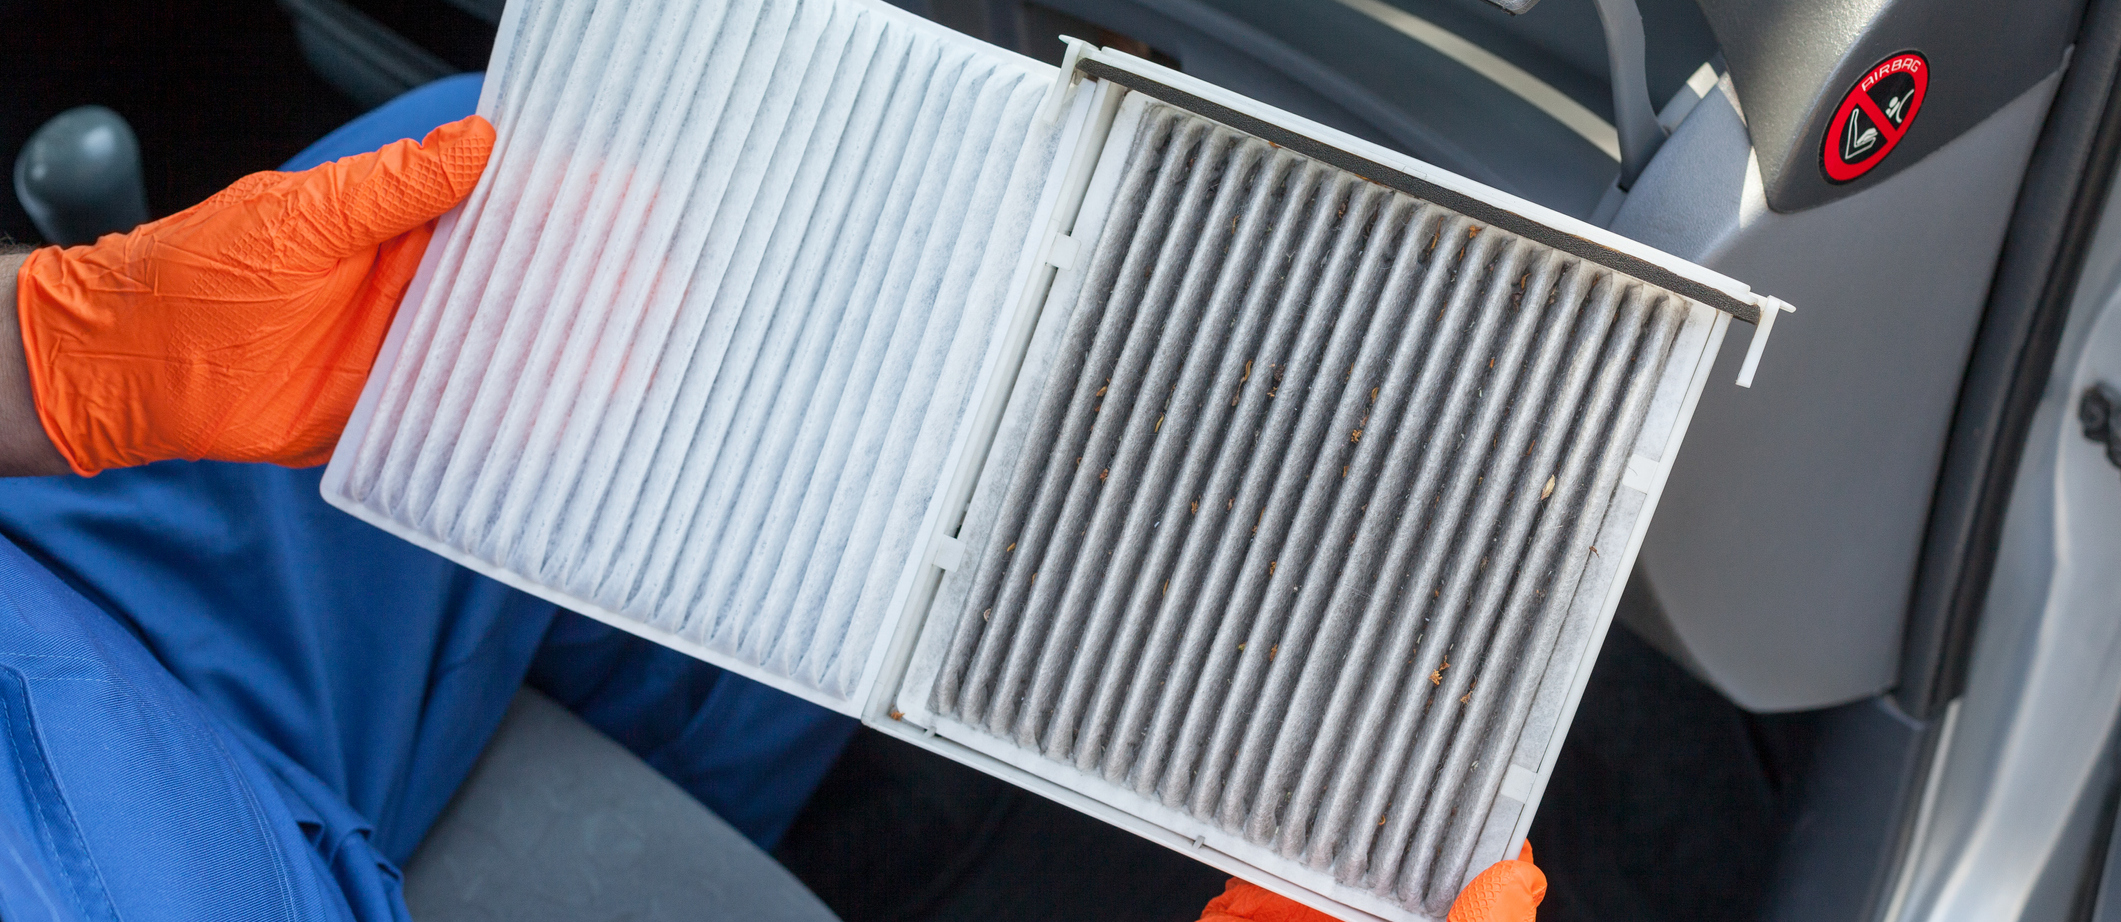 Cabin Air Filter Replacement near Hackensack, NJ